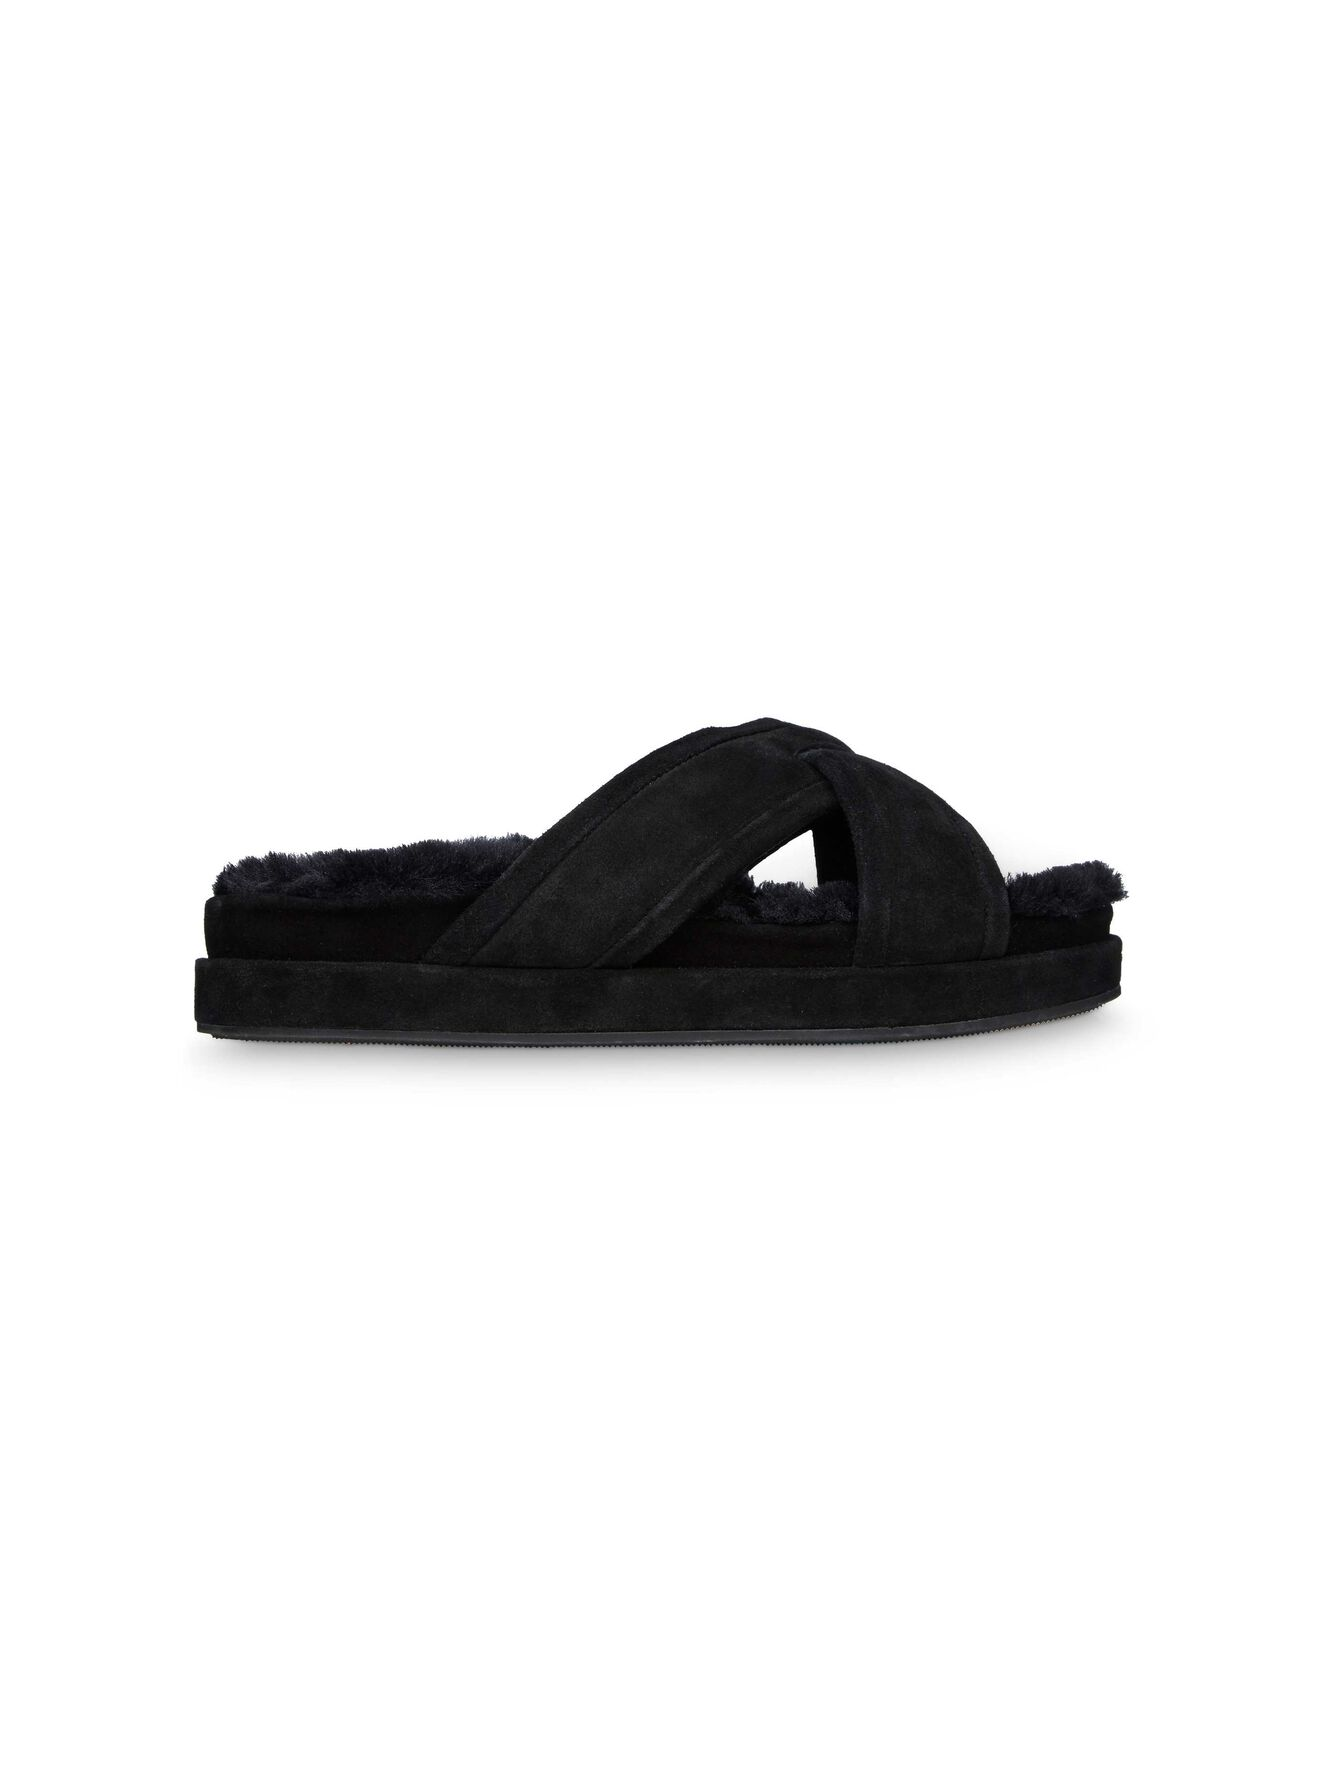 Thierry F sandal in Black Suede from Tiger of Sweden